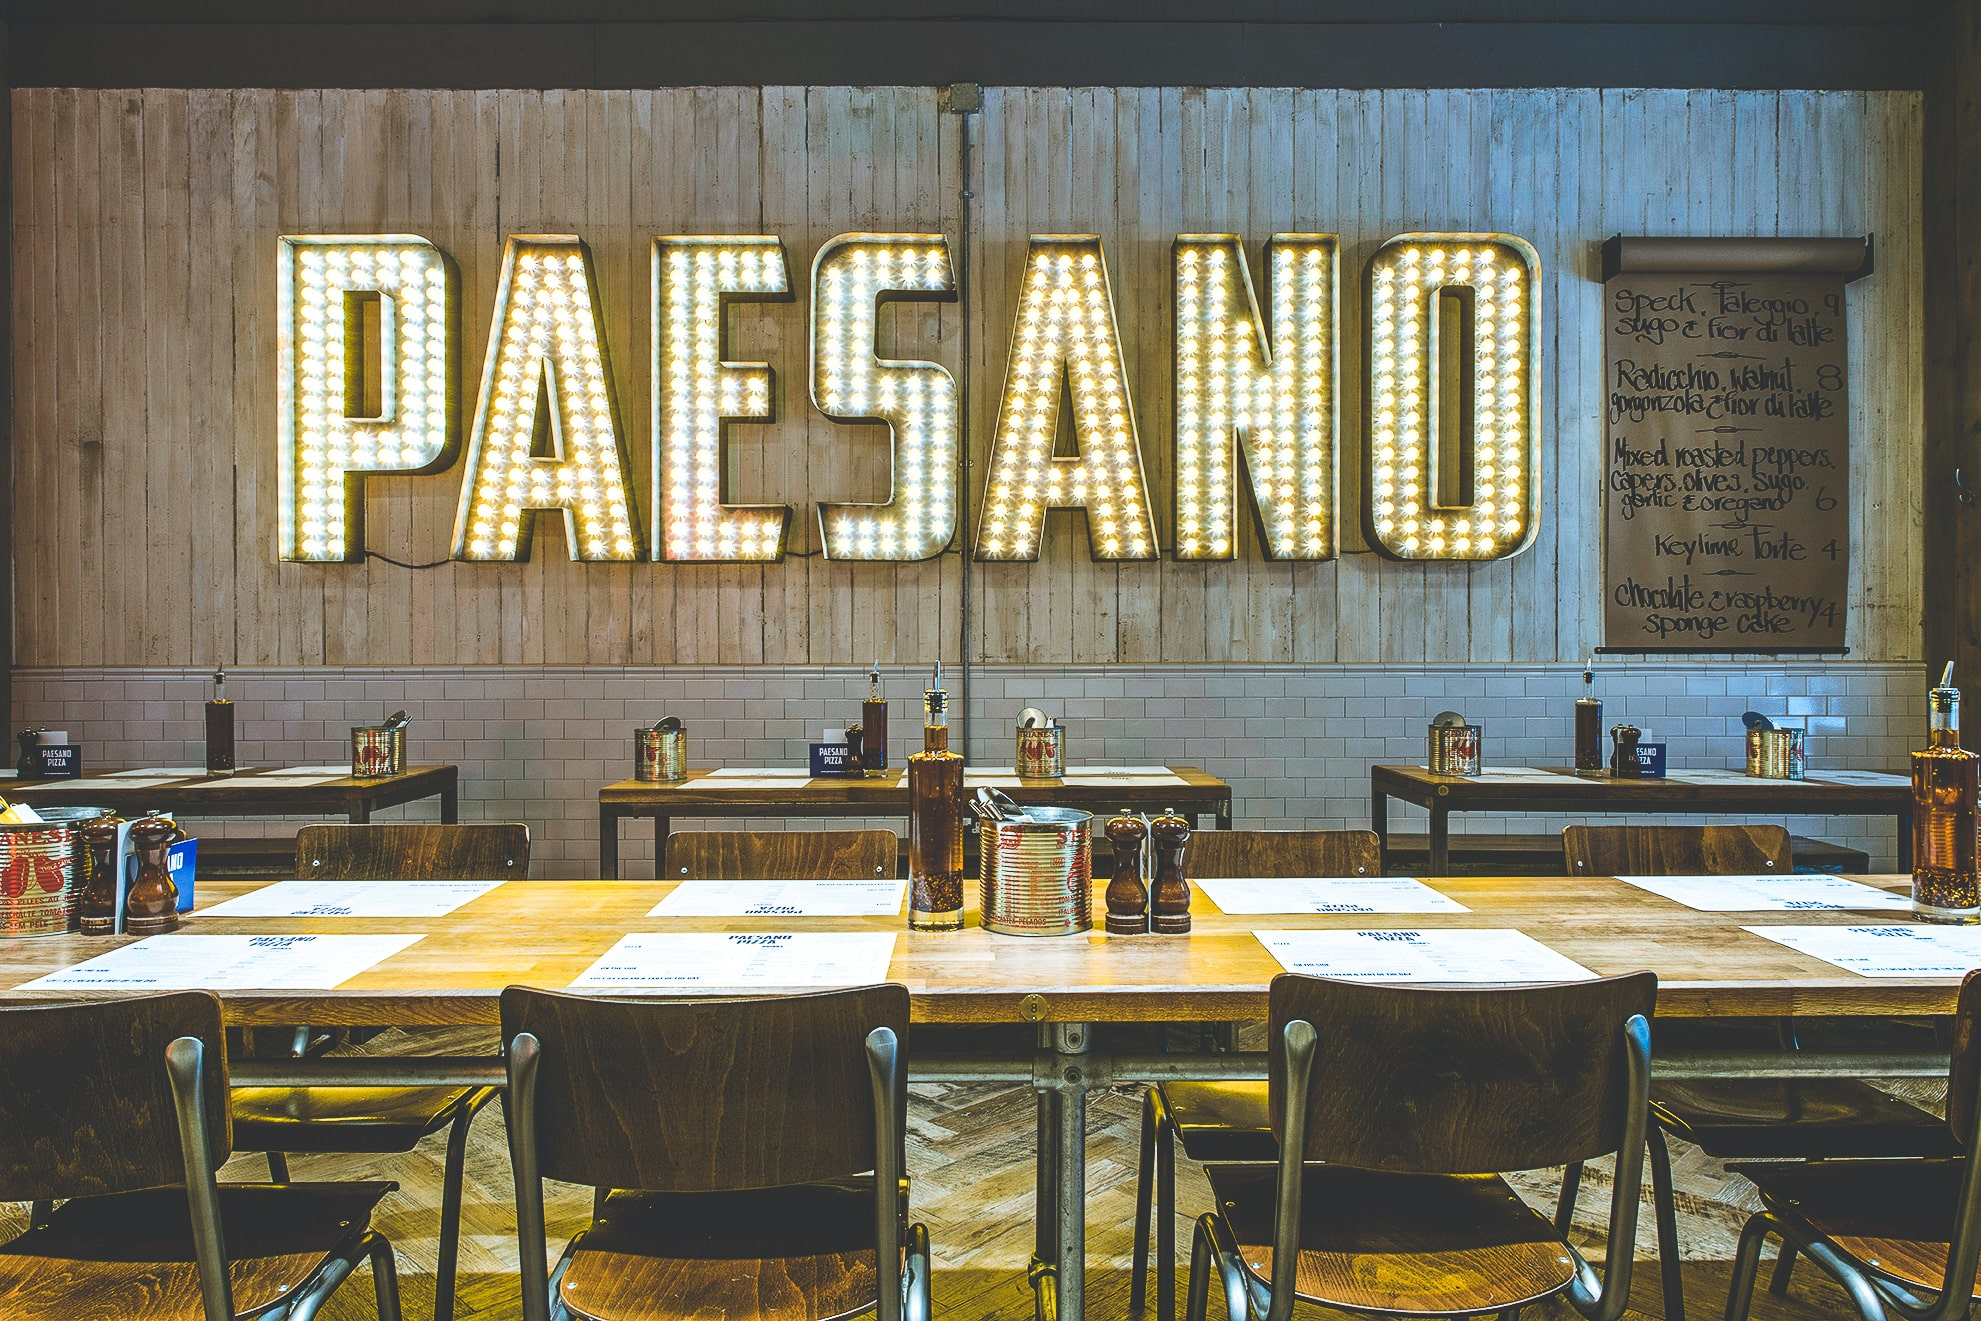 Paesano Pizza - Authentic Neapolitan Pizza